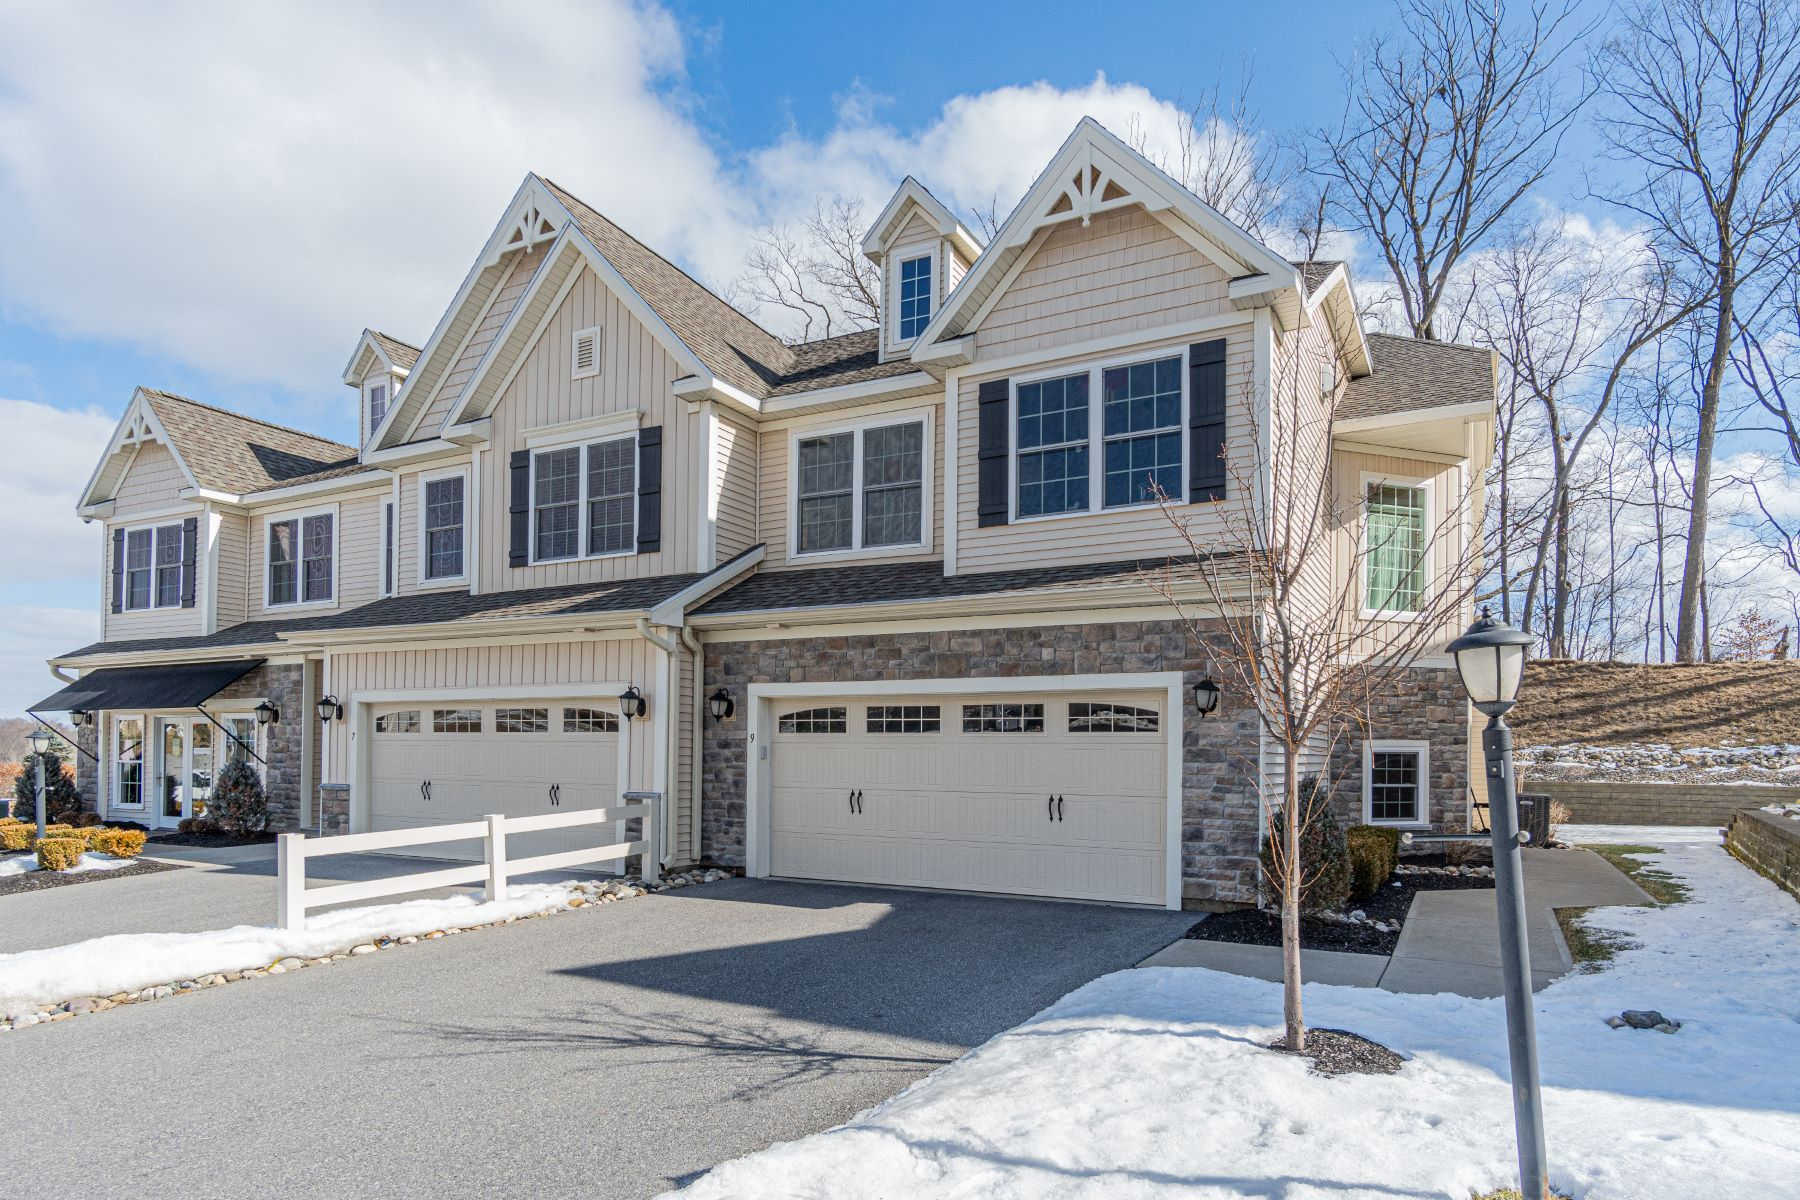 townhouses for Active at Immaculate Round Lake Townhome 9 Hillman Loop Round Lake, New York 12151 United States